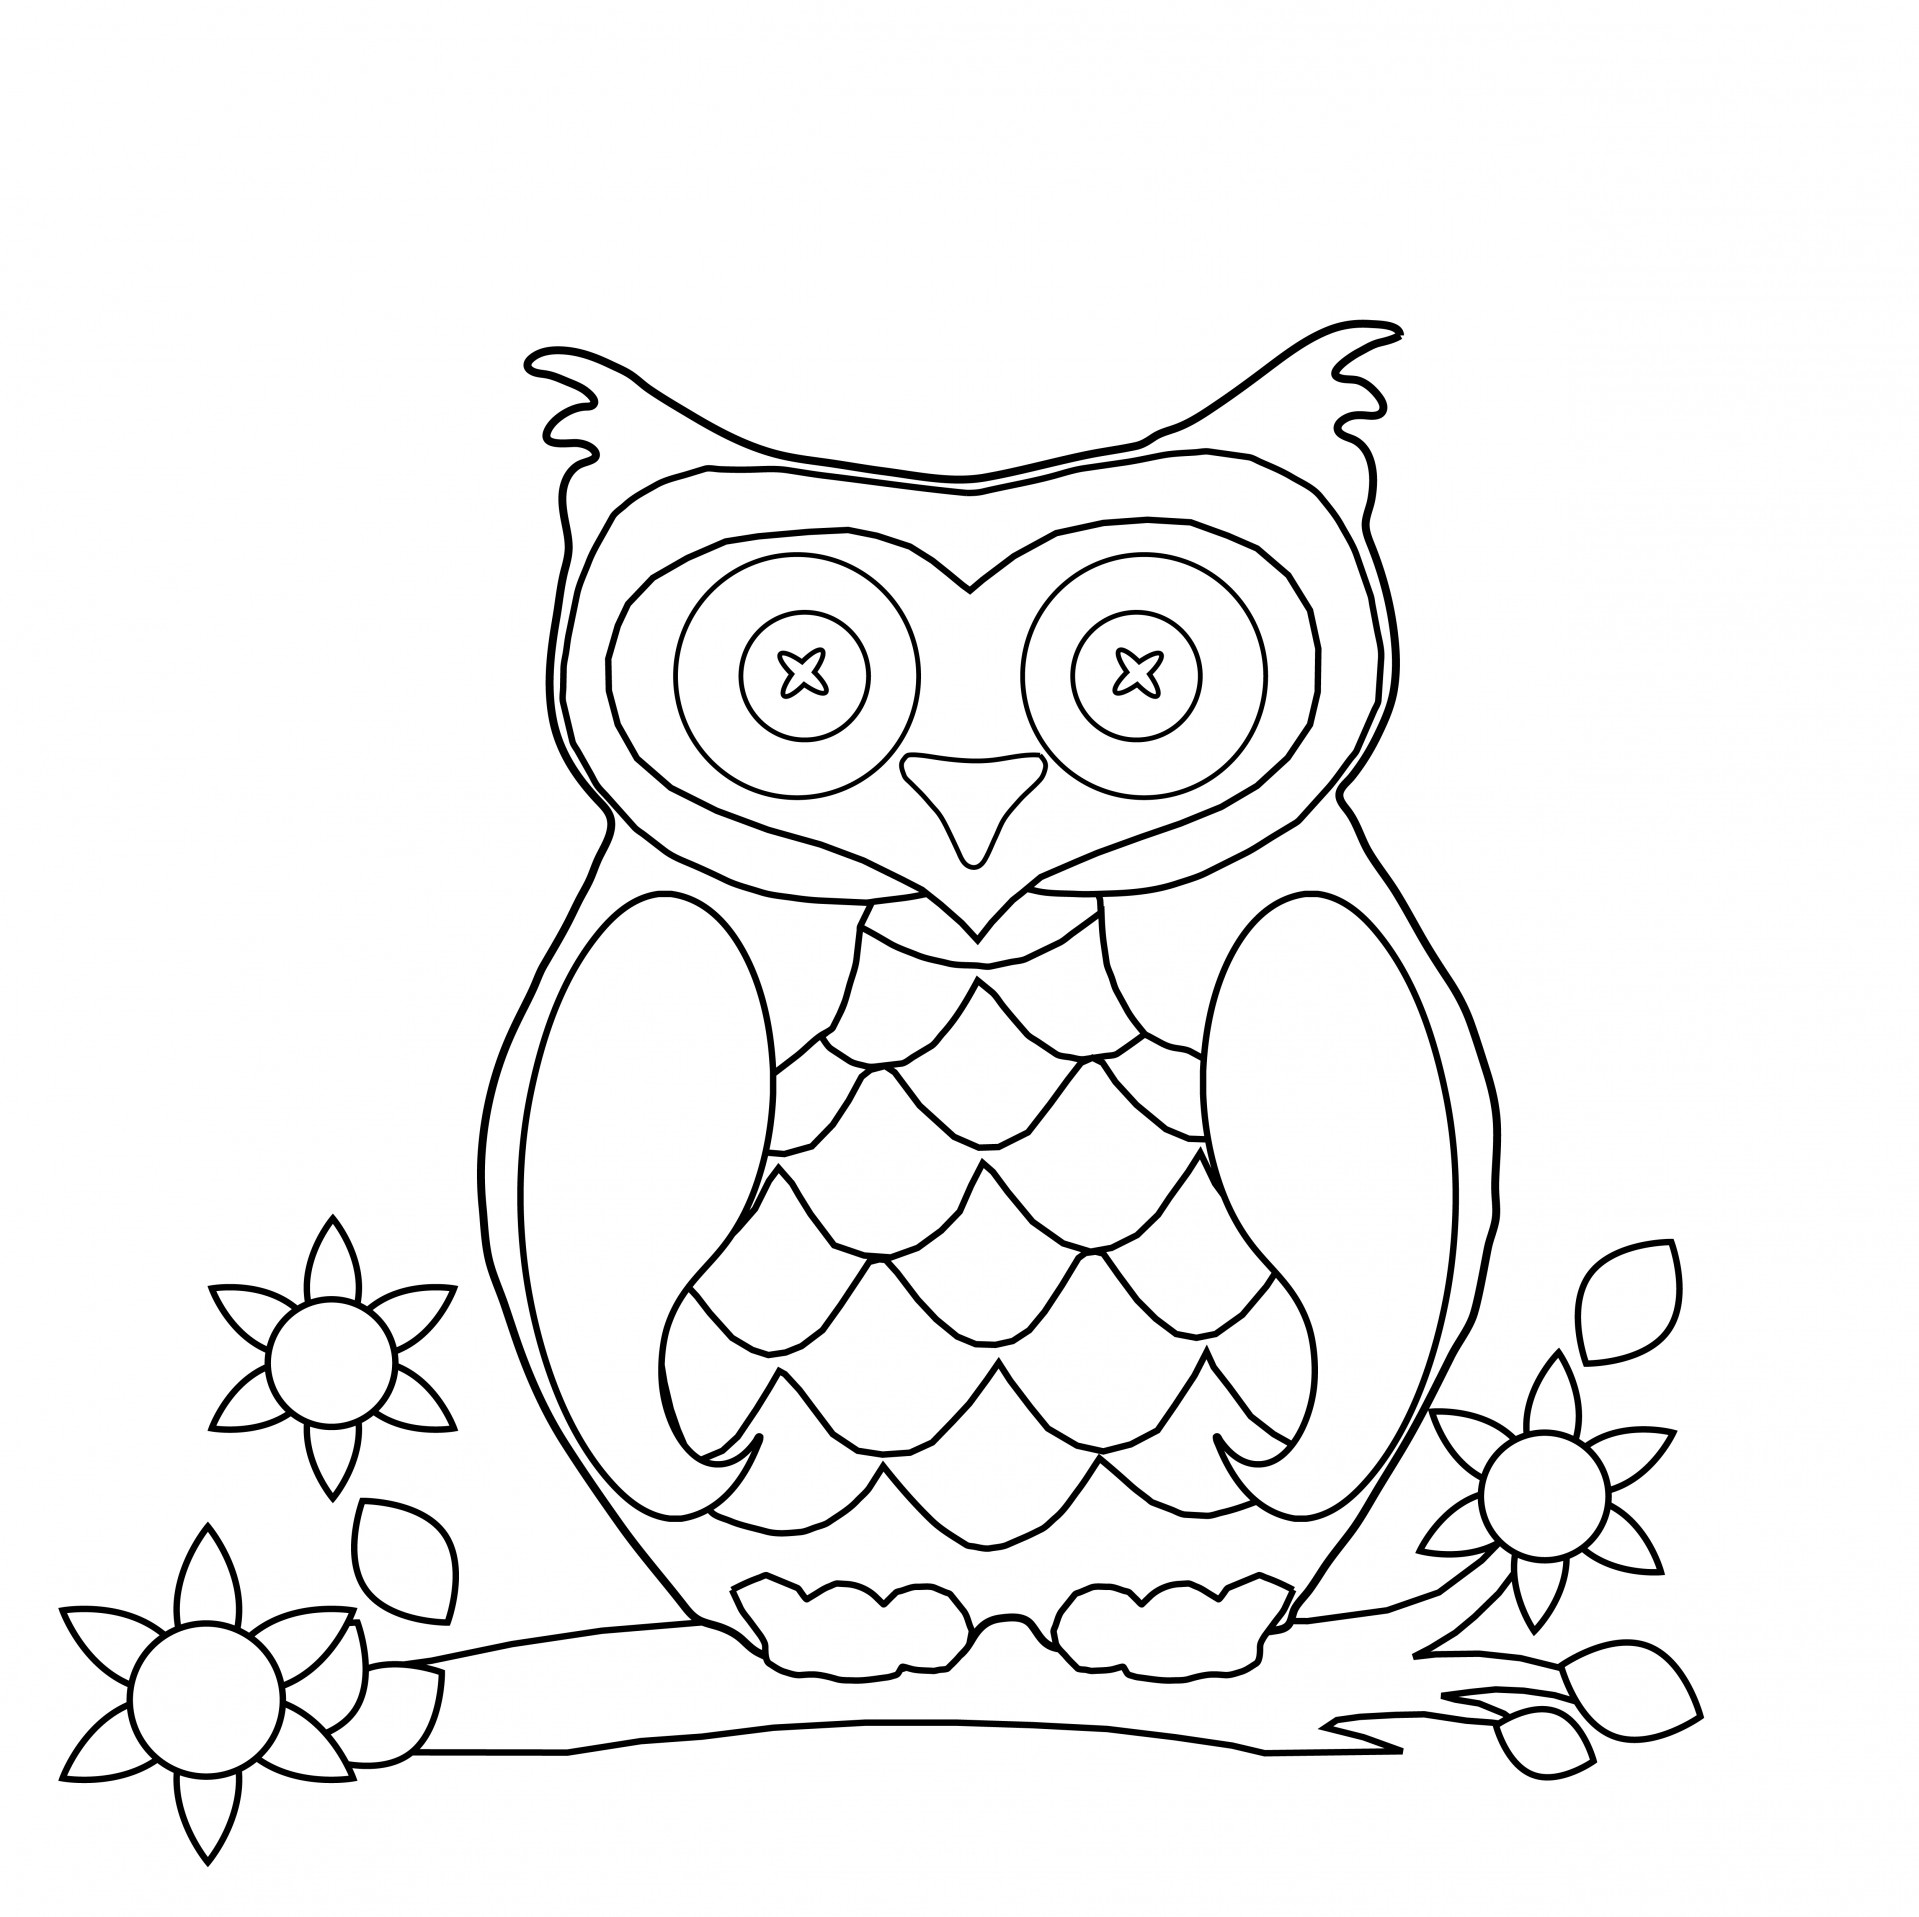 colouring pages to print free free printable abstract coloring pages for adults free print colouring to pages